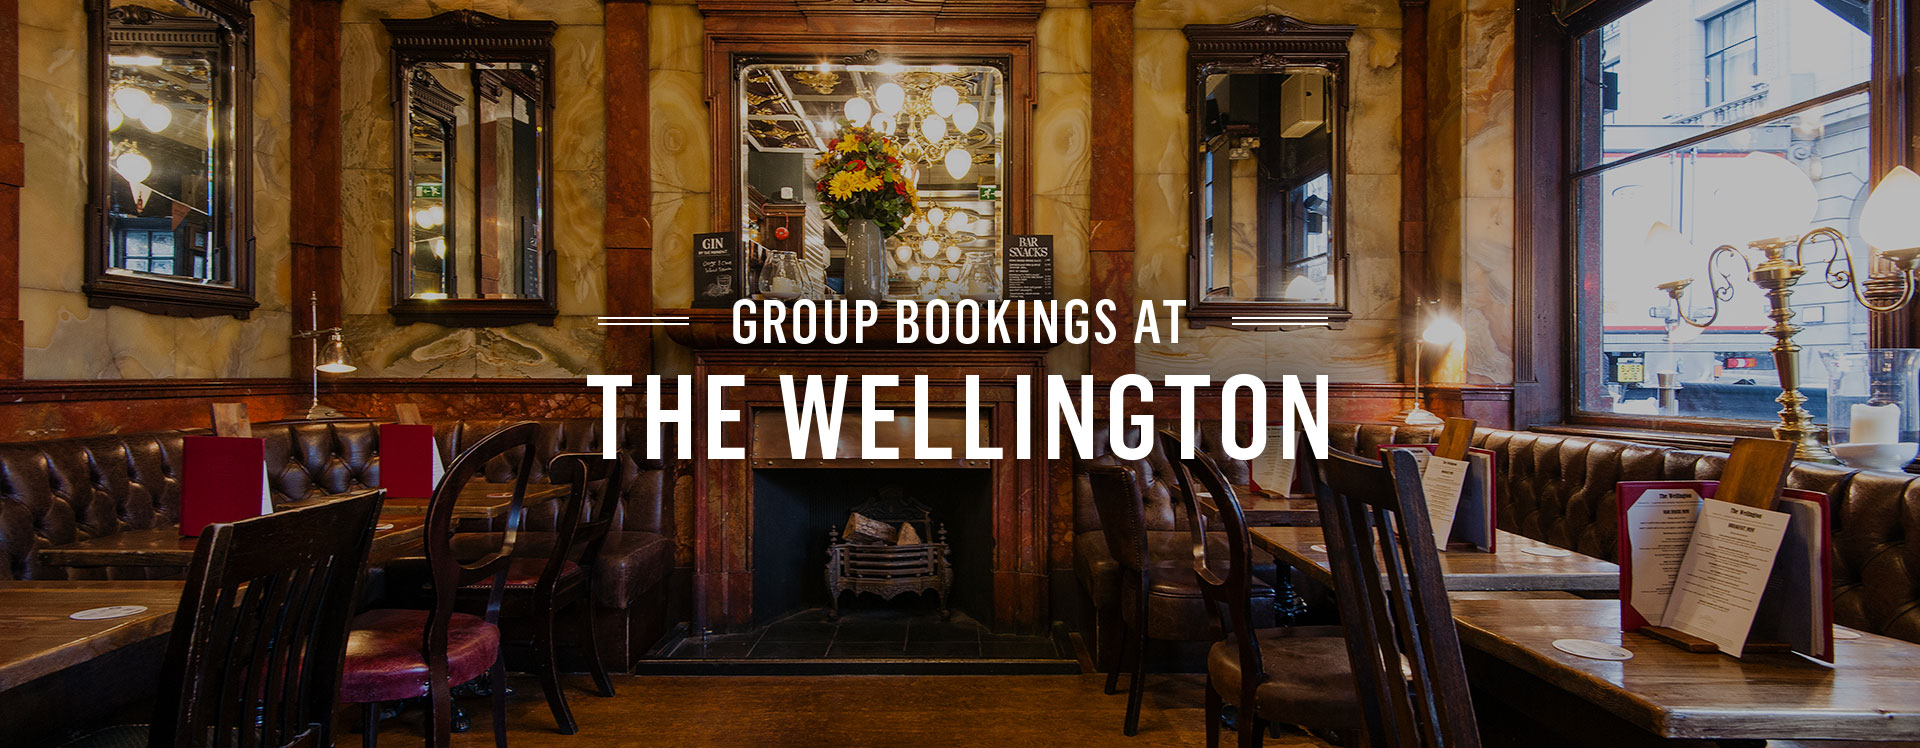 Group Bookings at The Wellington